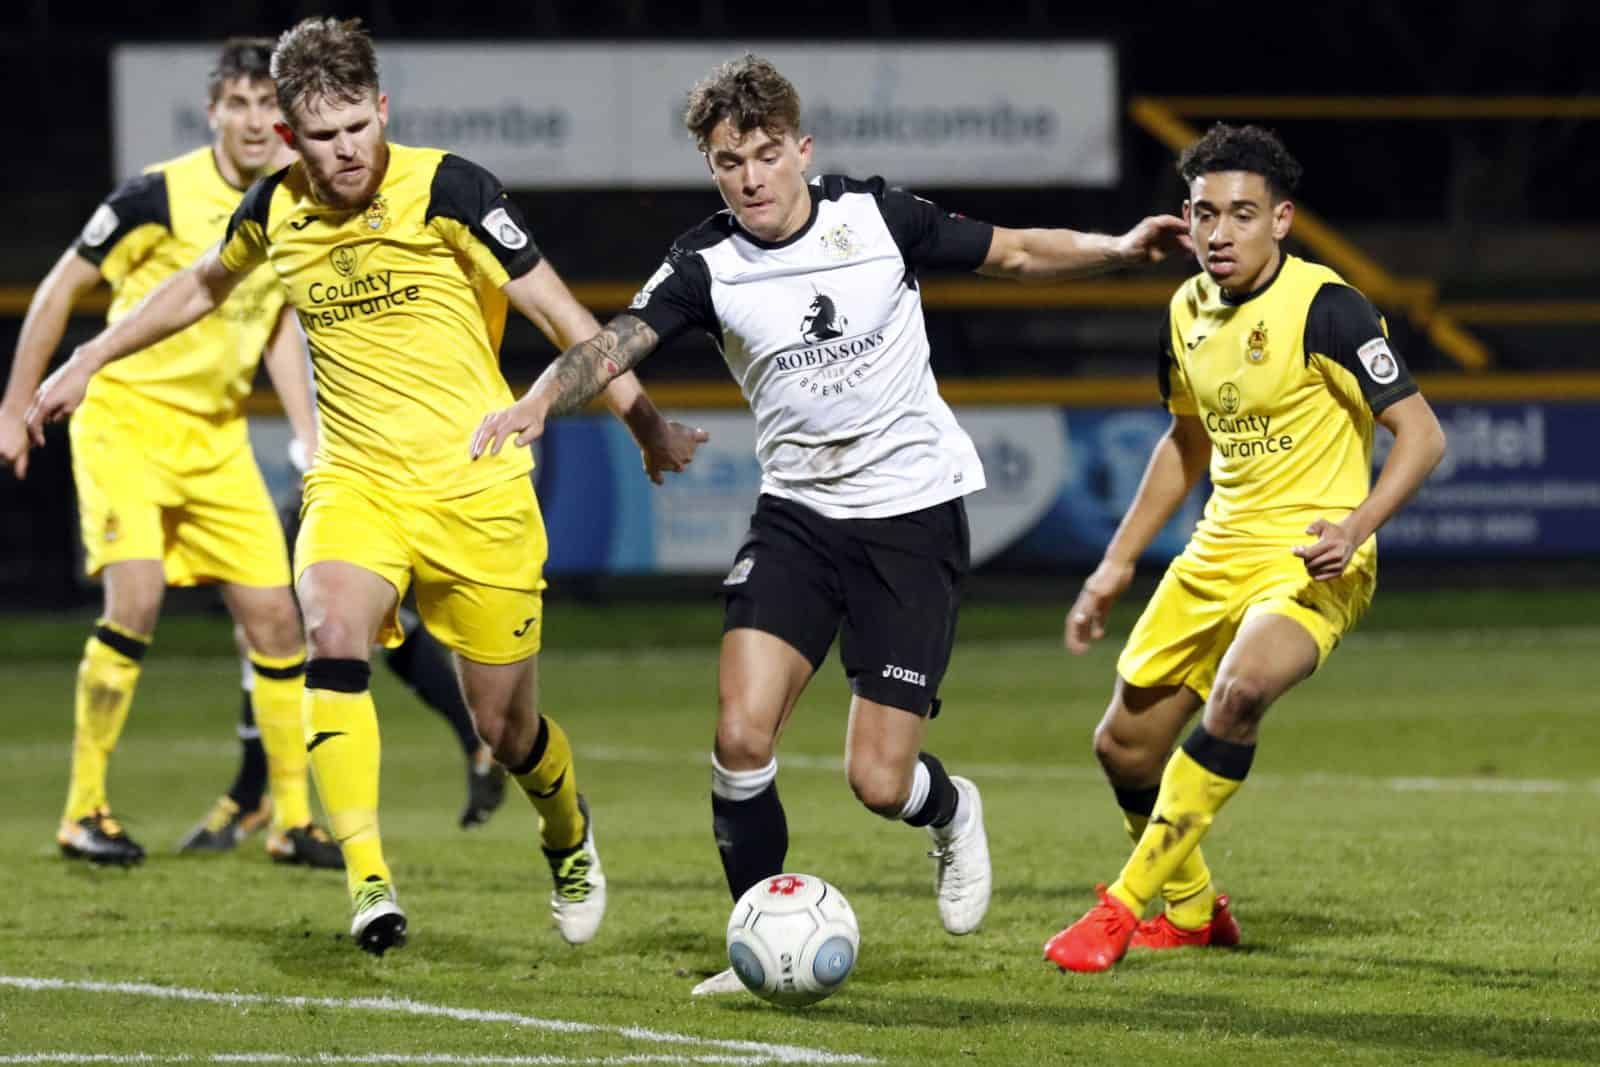 Ben McKenna, Southport FC 0-3 Stockport County, 29.11.17